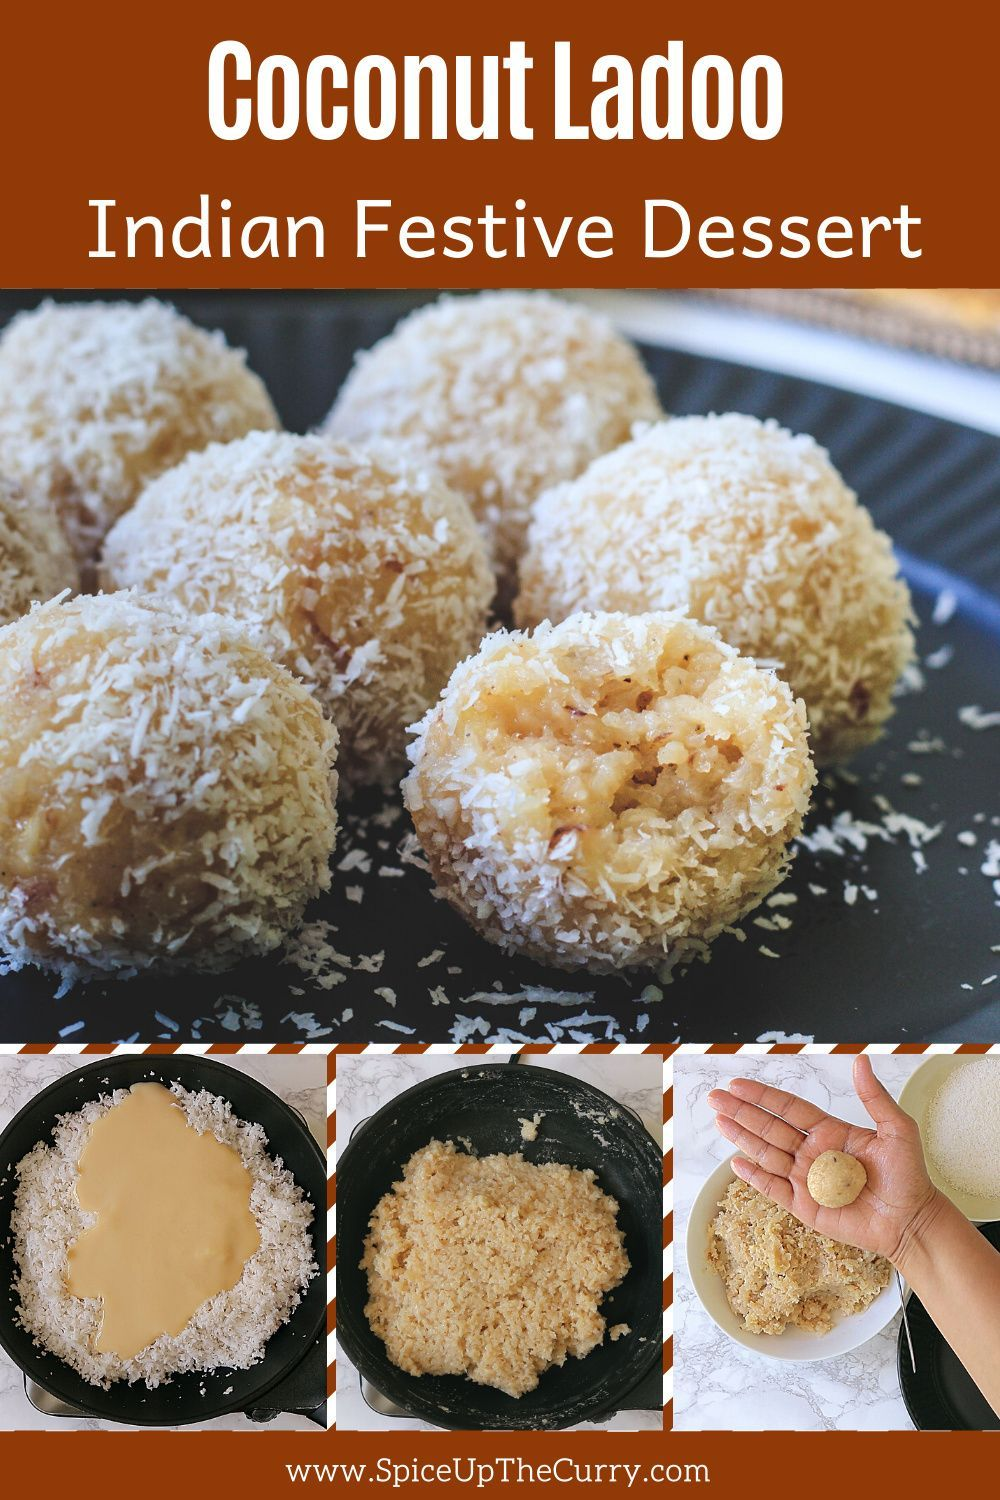 Coconut Ladoo Recipe With Condensed Milk Spice Up The Curry Recipe In 2020 Coconut Ladoo Recipe Condensed Milk Recipes Recipes